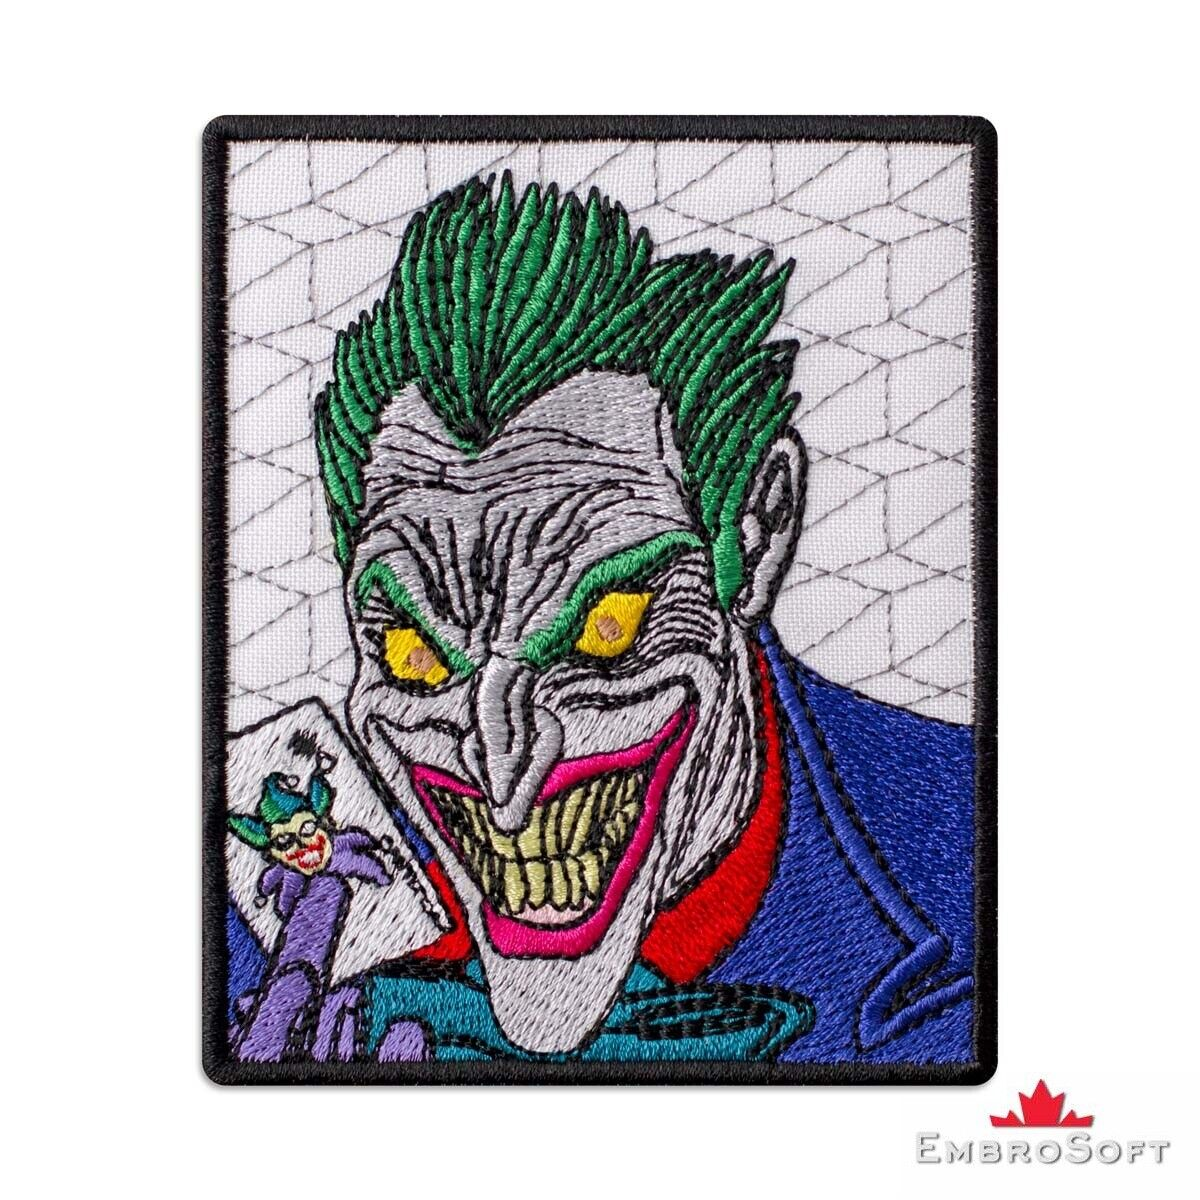 PENNYWISE THE DANCING CLOWN LARGE PATCH IRON/&SEW ON 11.4 x 10.7 Inch